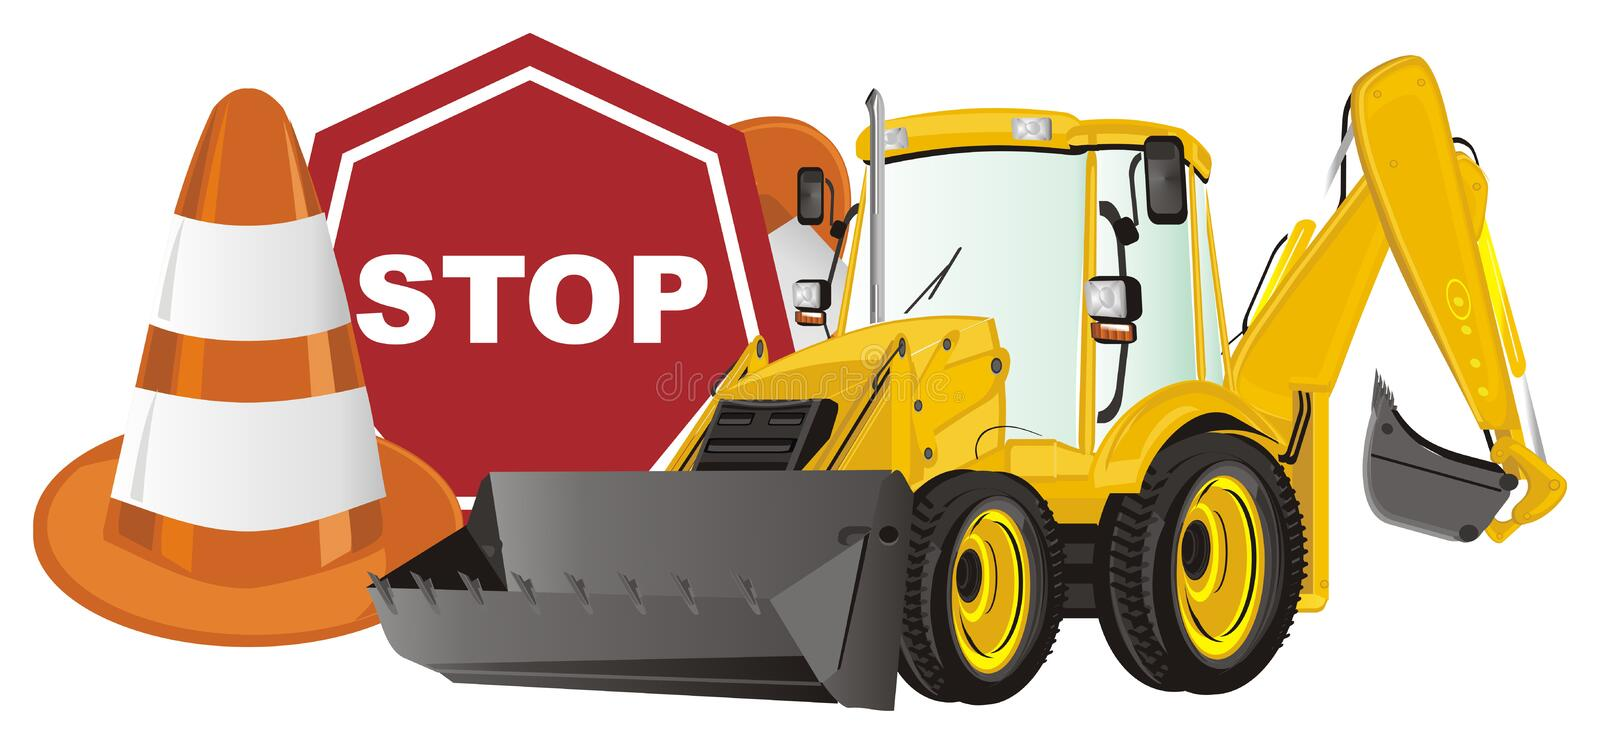 Excavator and large road signs stock illustration